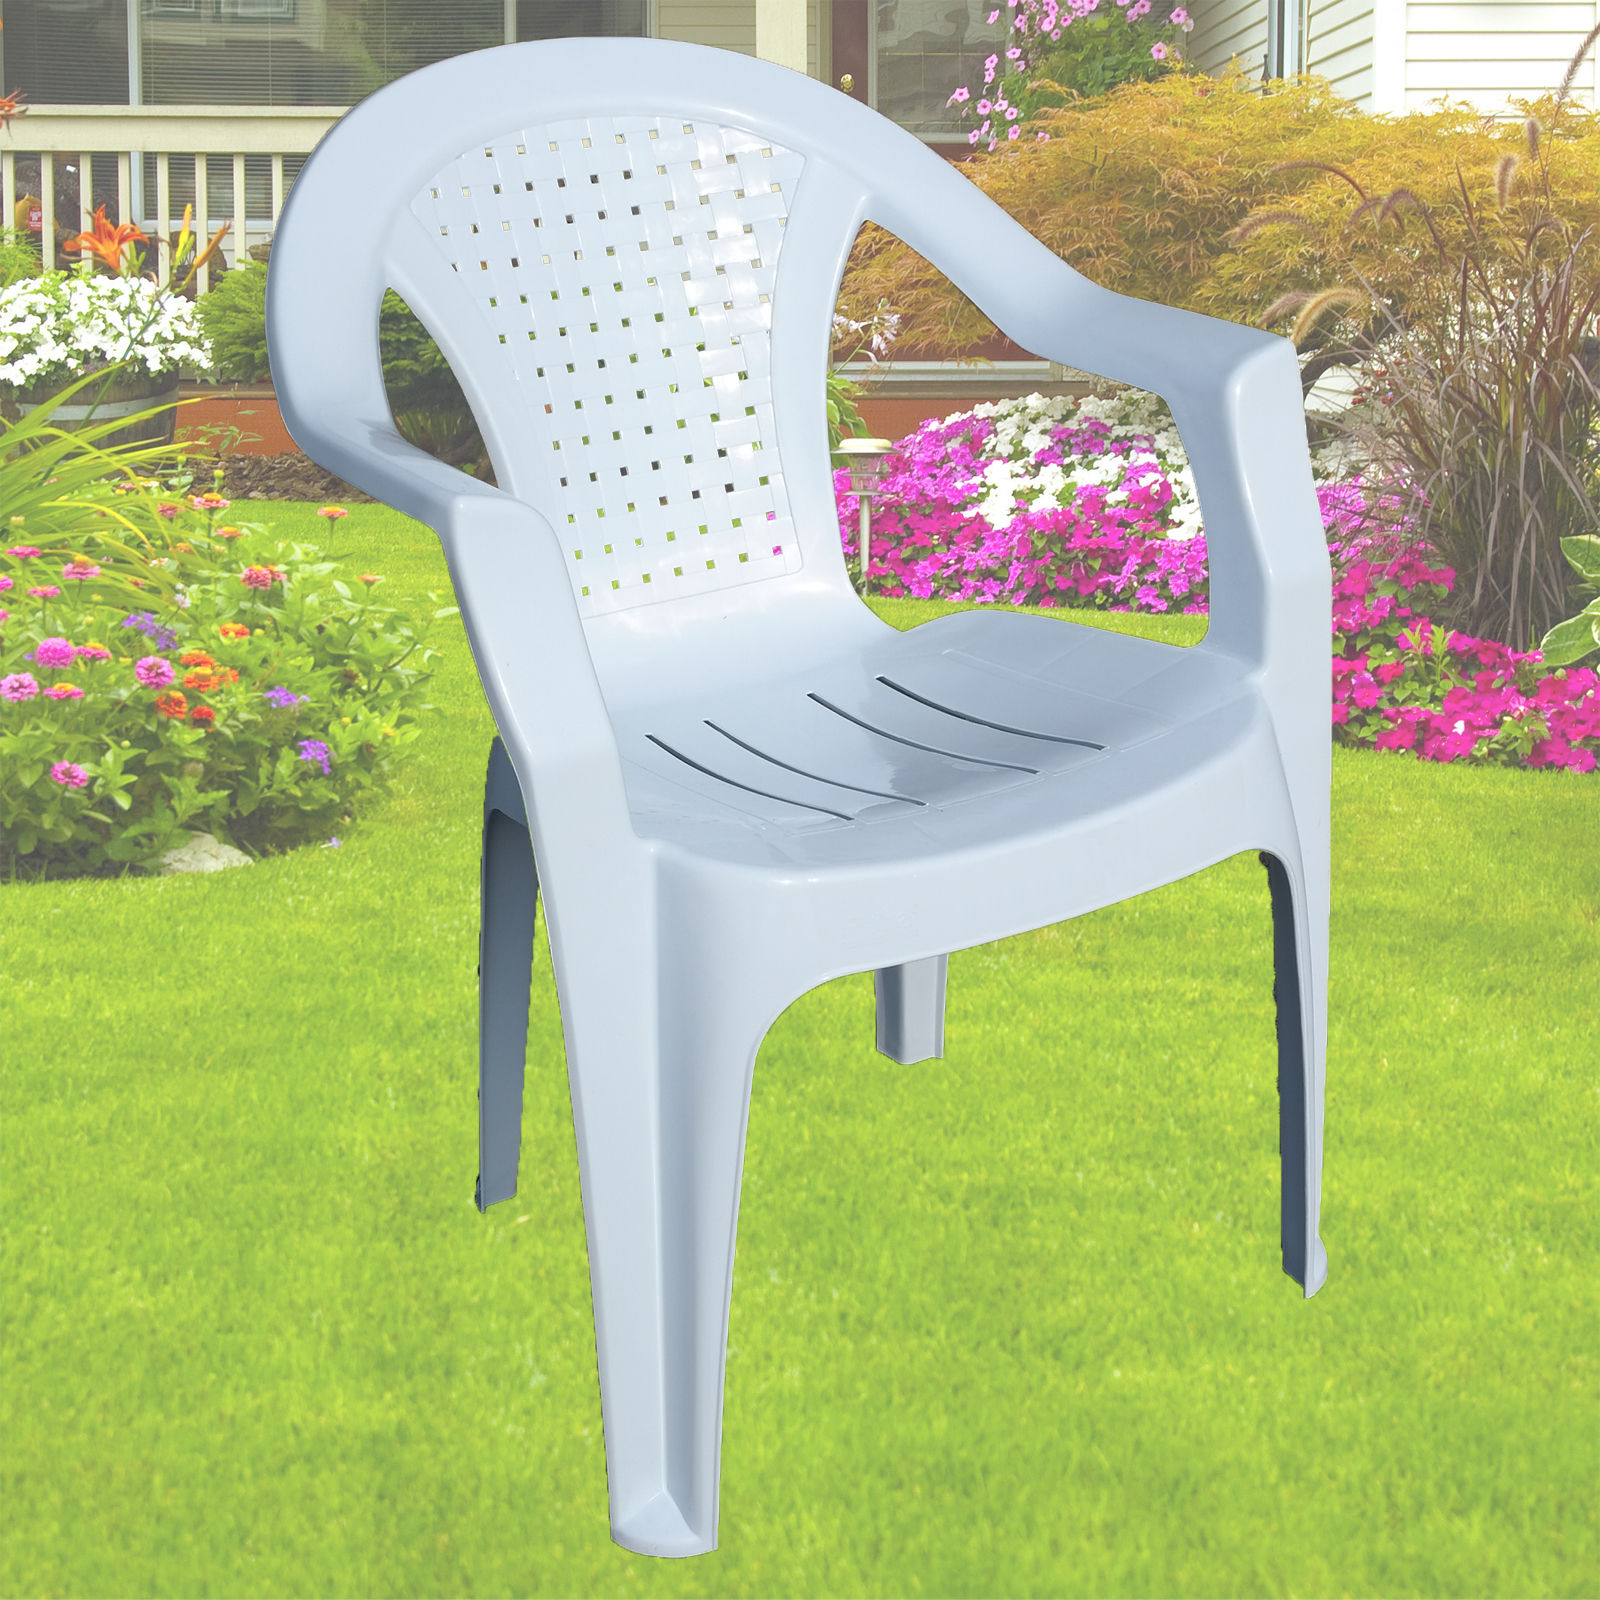 Details About Indoor Outdoor Plastic Chairs Garden Patio Stacking Strong Armchair White Chair